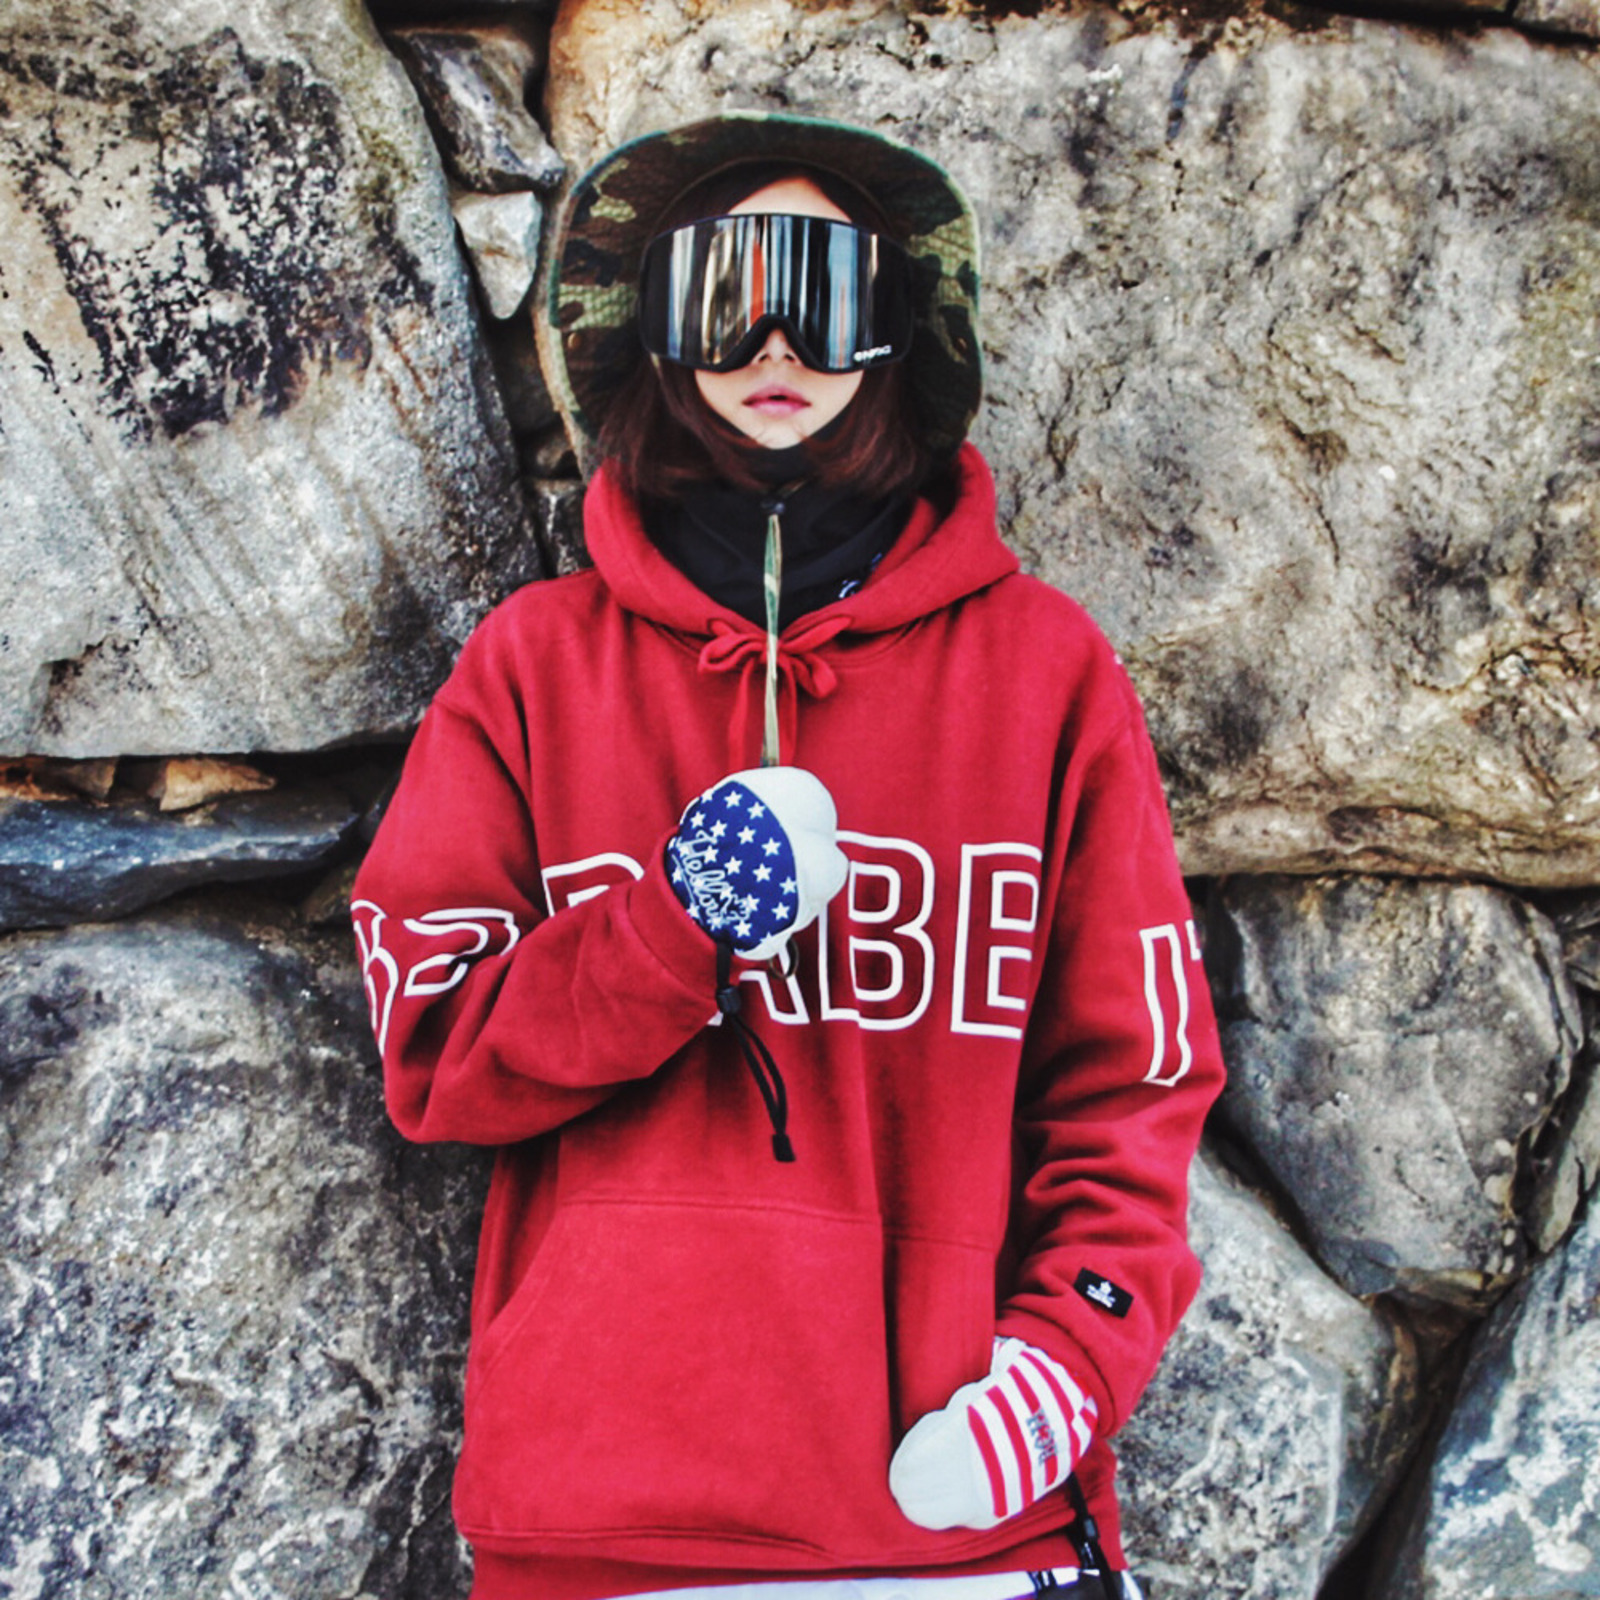 BSRABBIT 1516 SNOWBOARD Part.2  LOOKBOOK